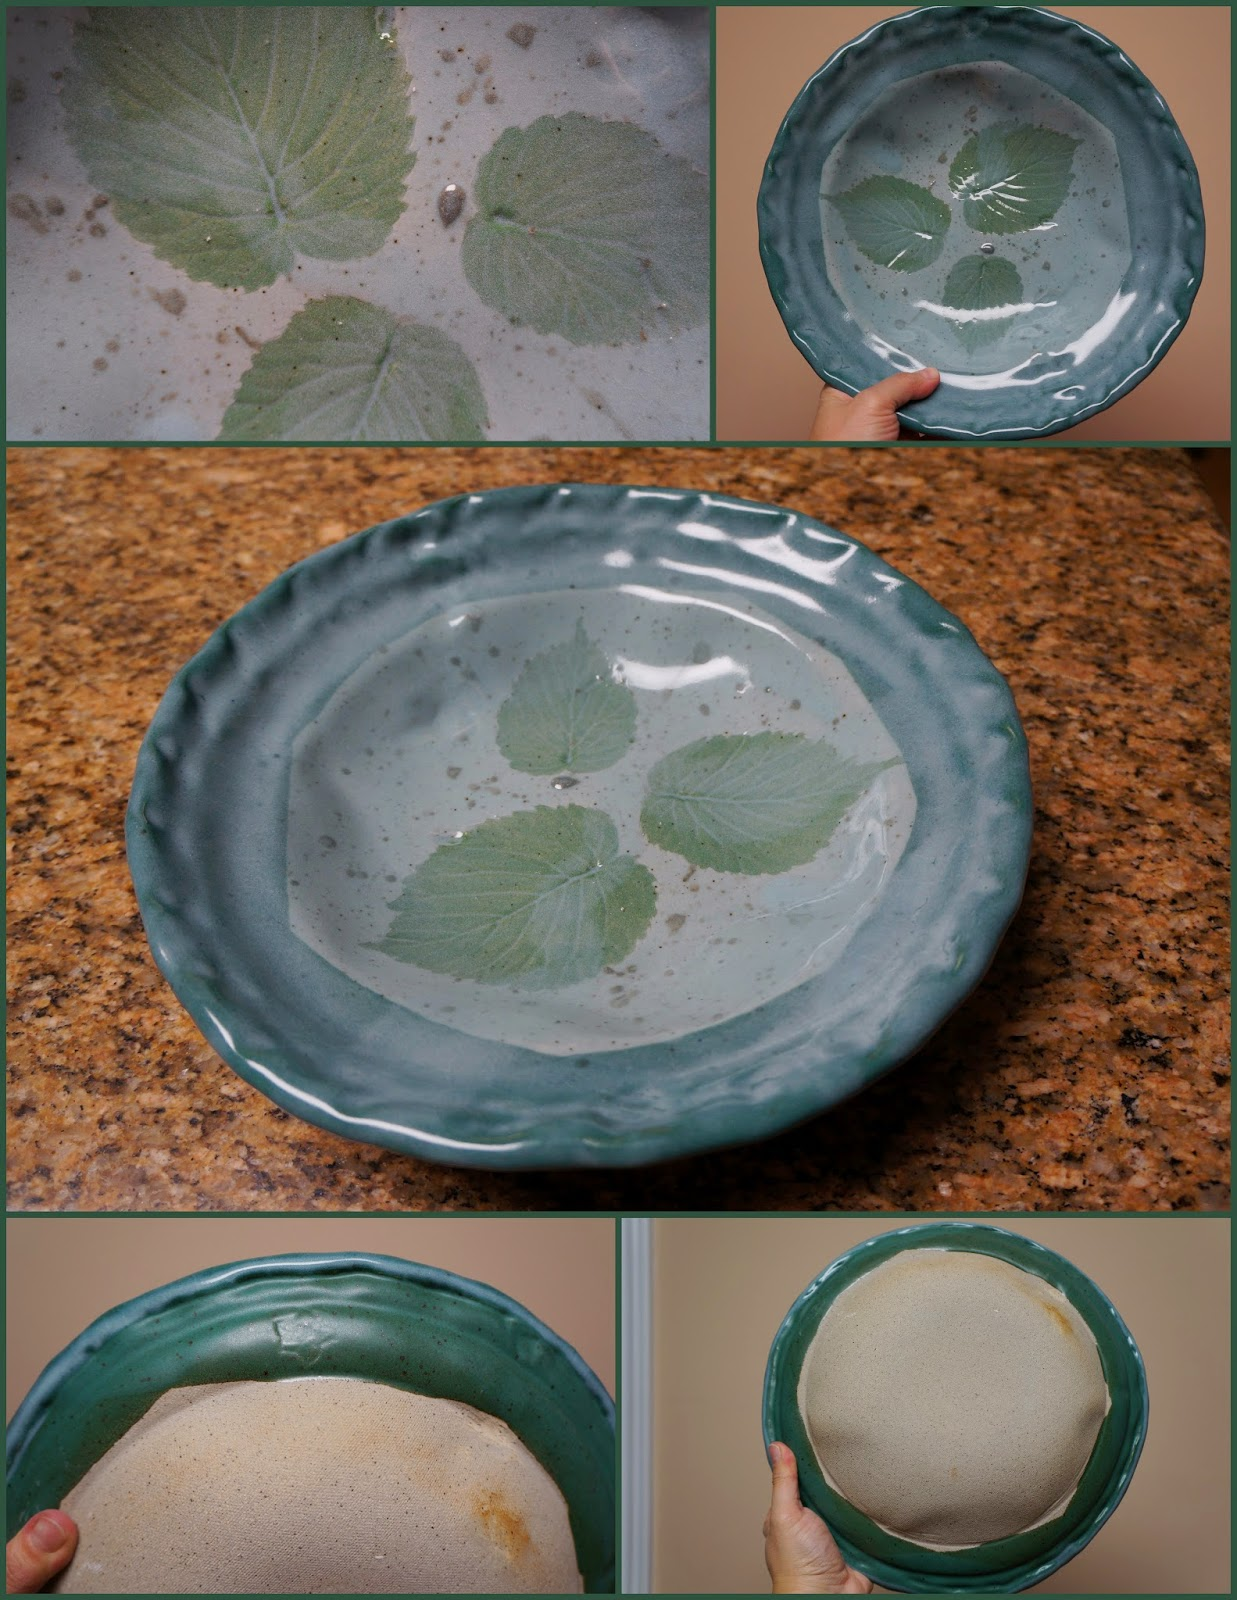 Handmade ceramic bowl with pressed leaves.